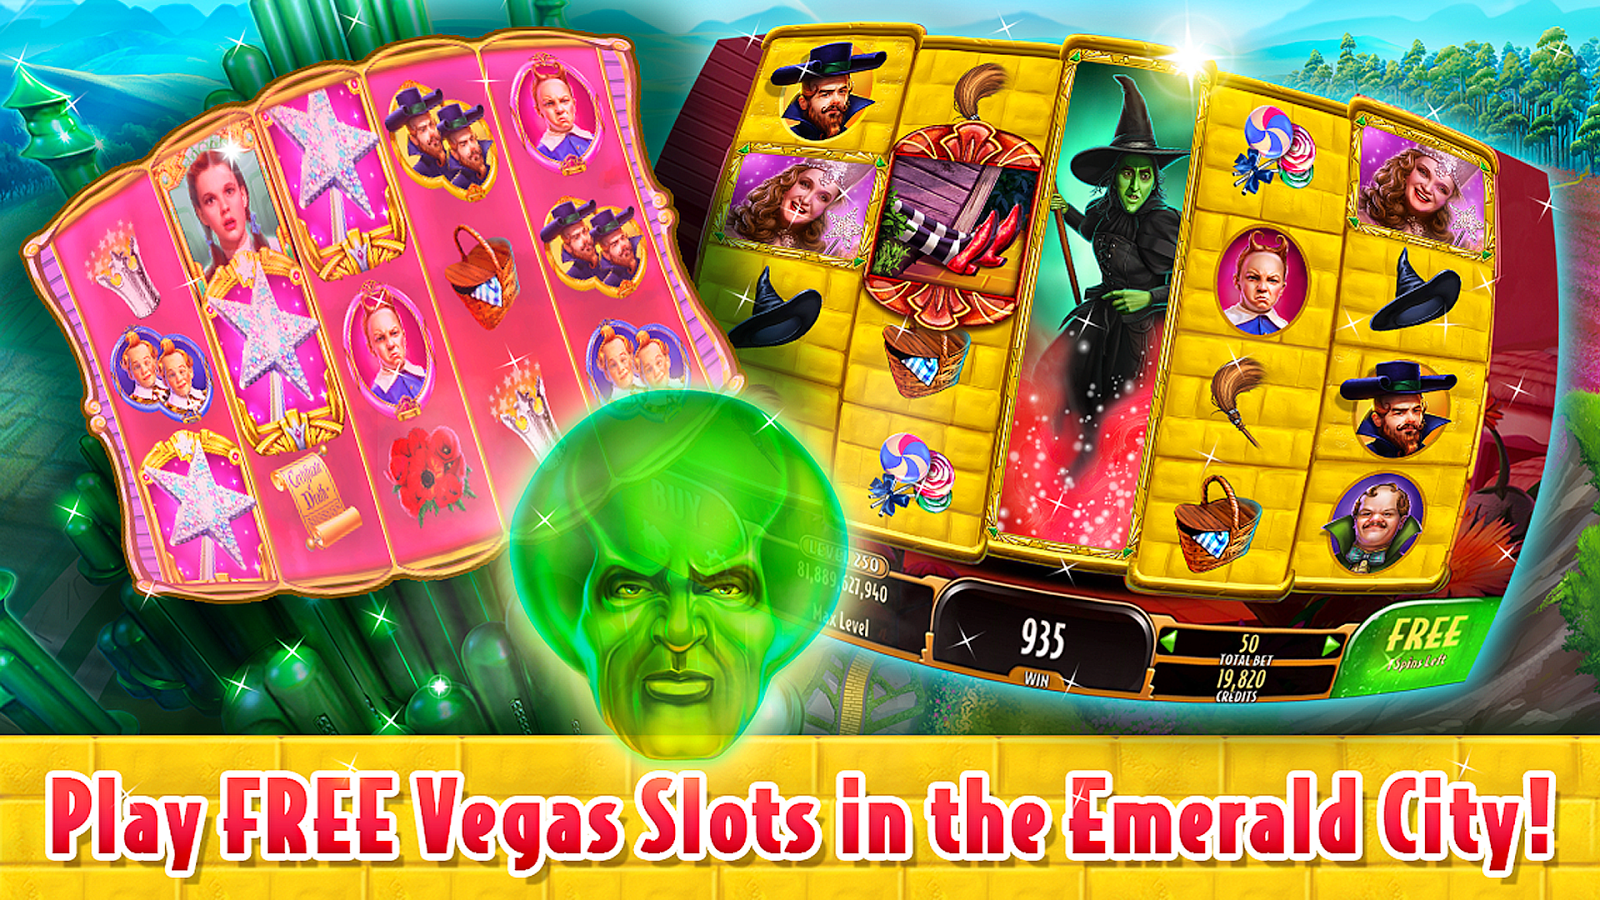 Dynamite 7 Slots - Play for Free in Your Web Browser